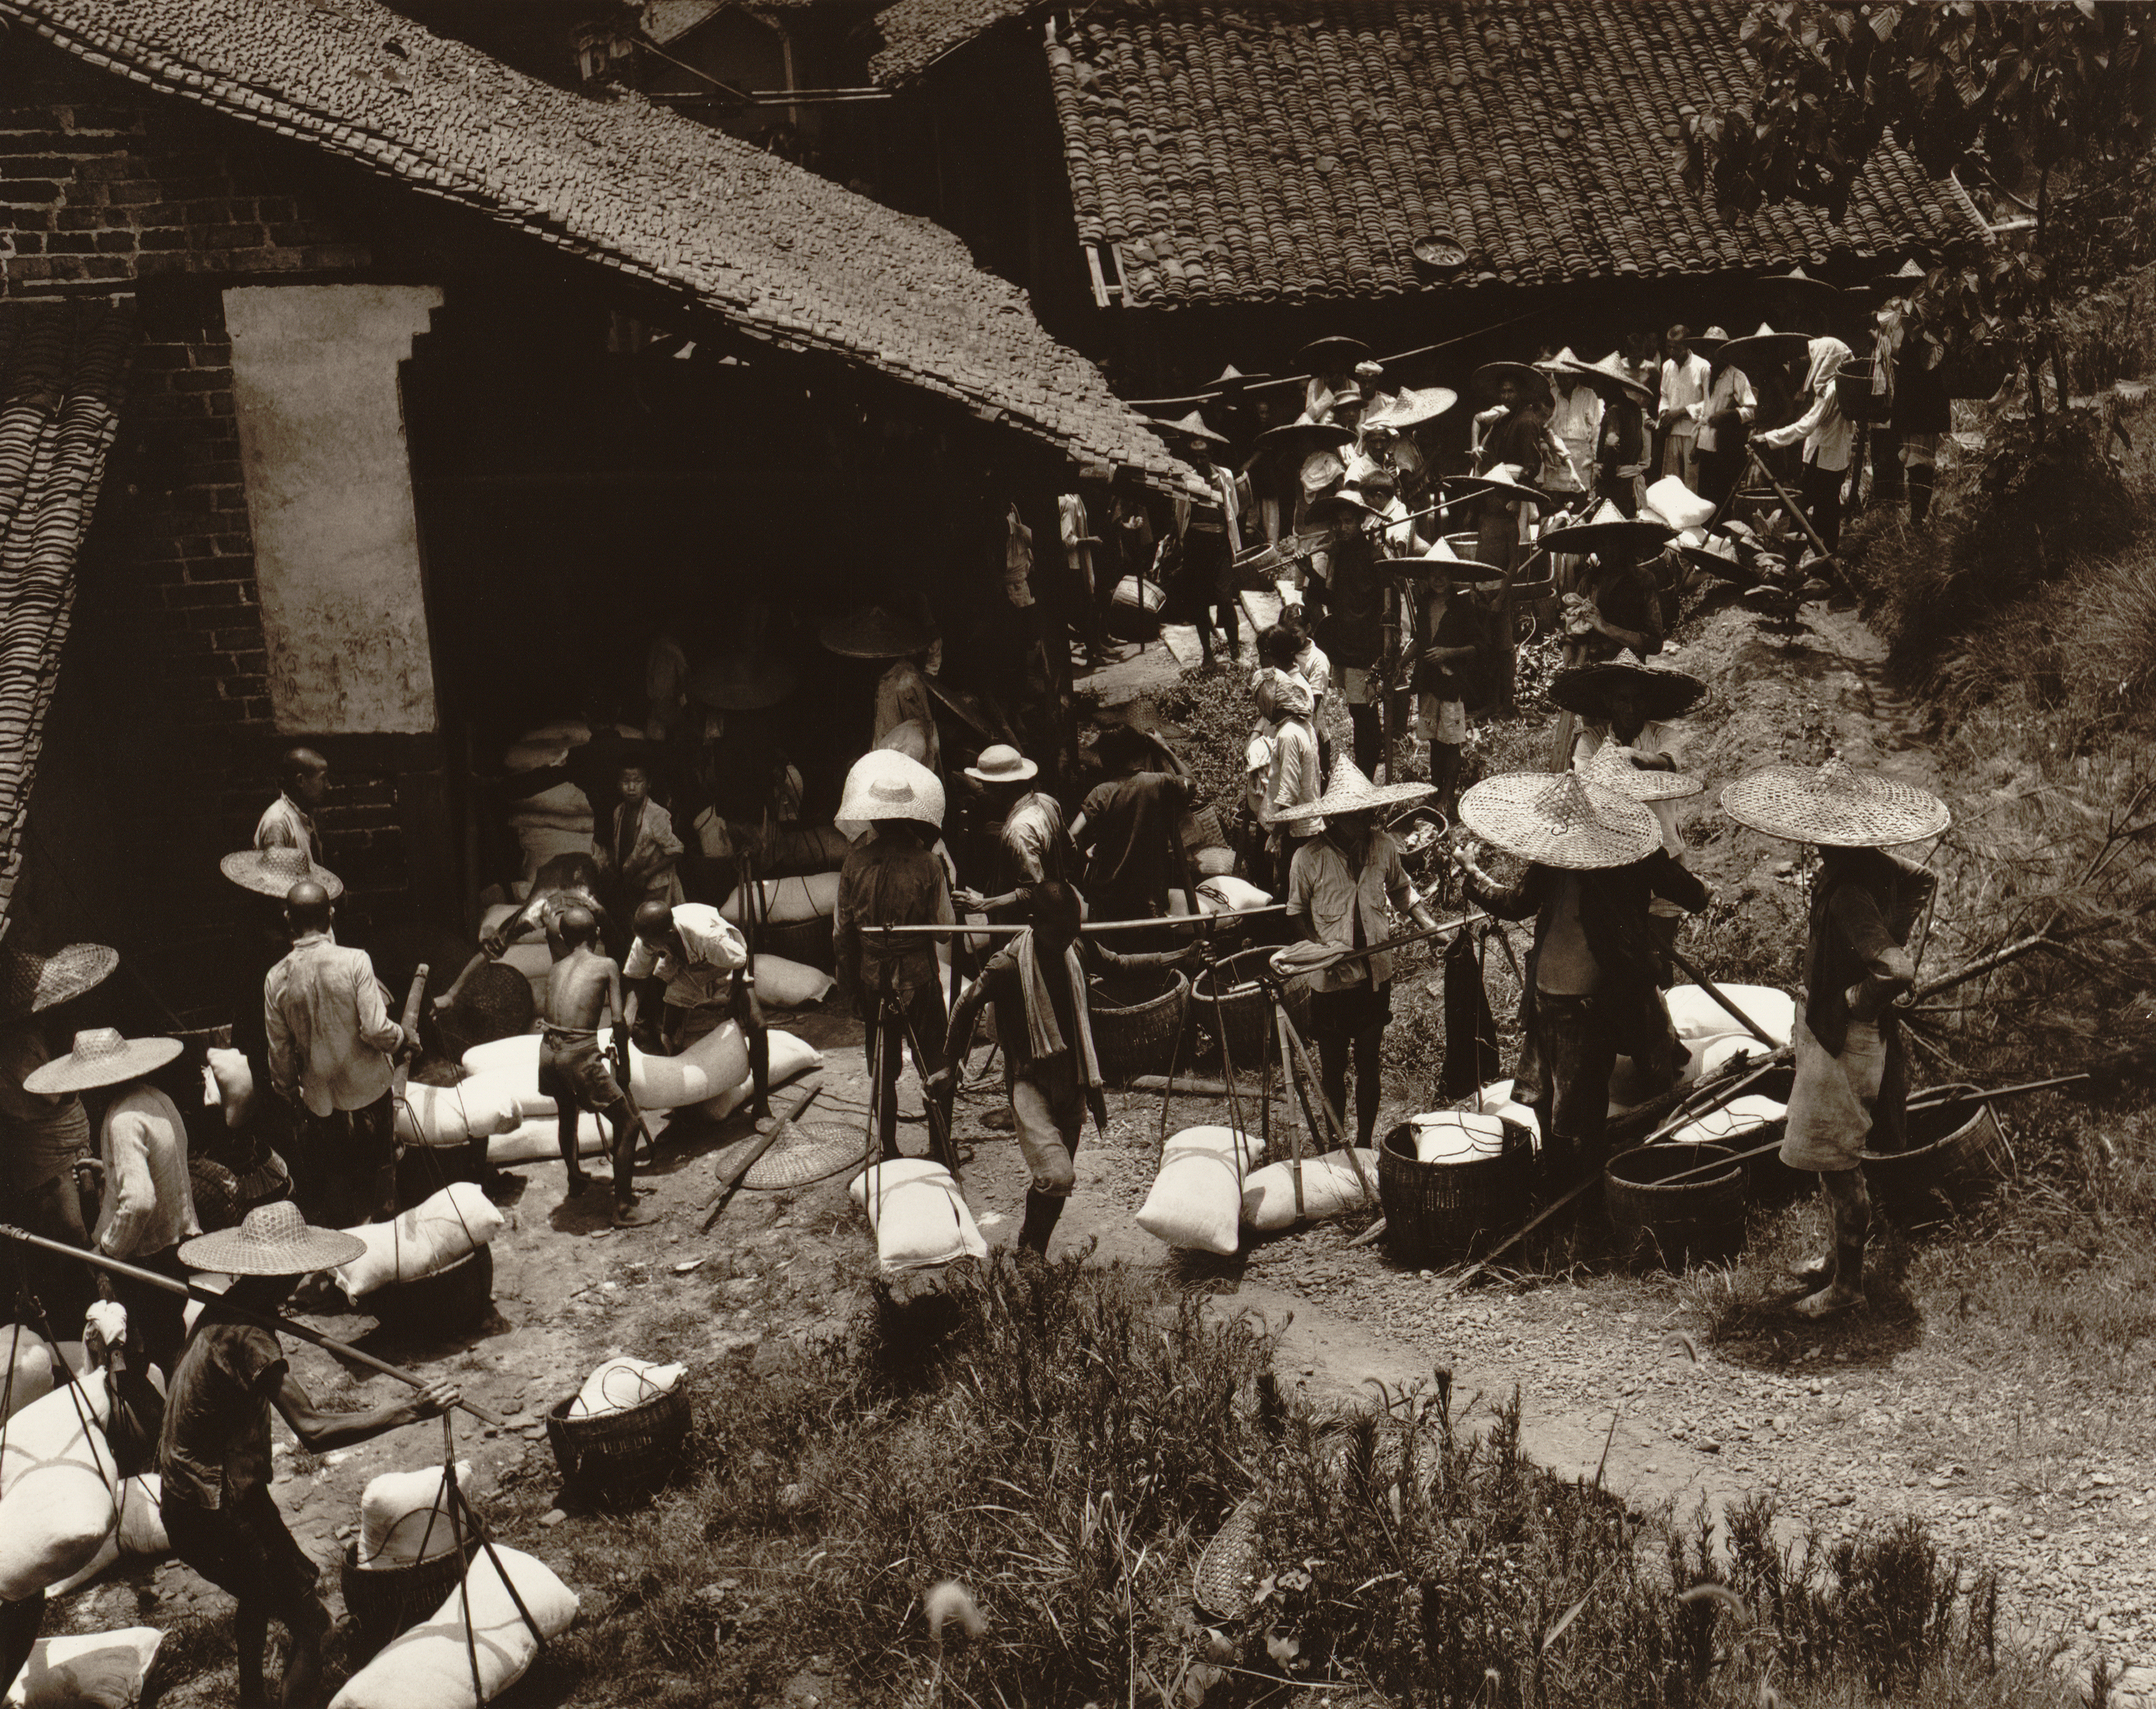 Distribution of rice during time of famine, China, 1945